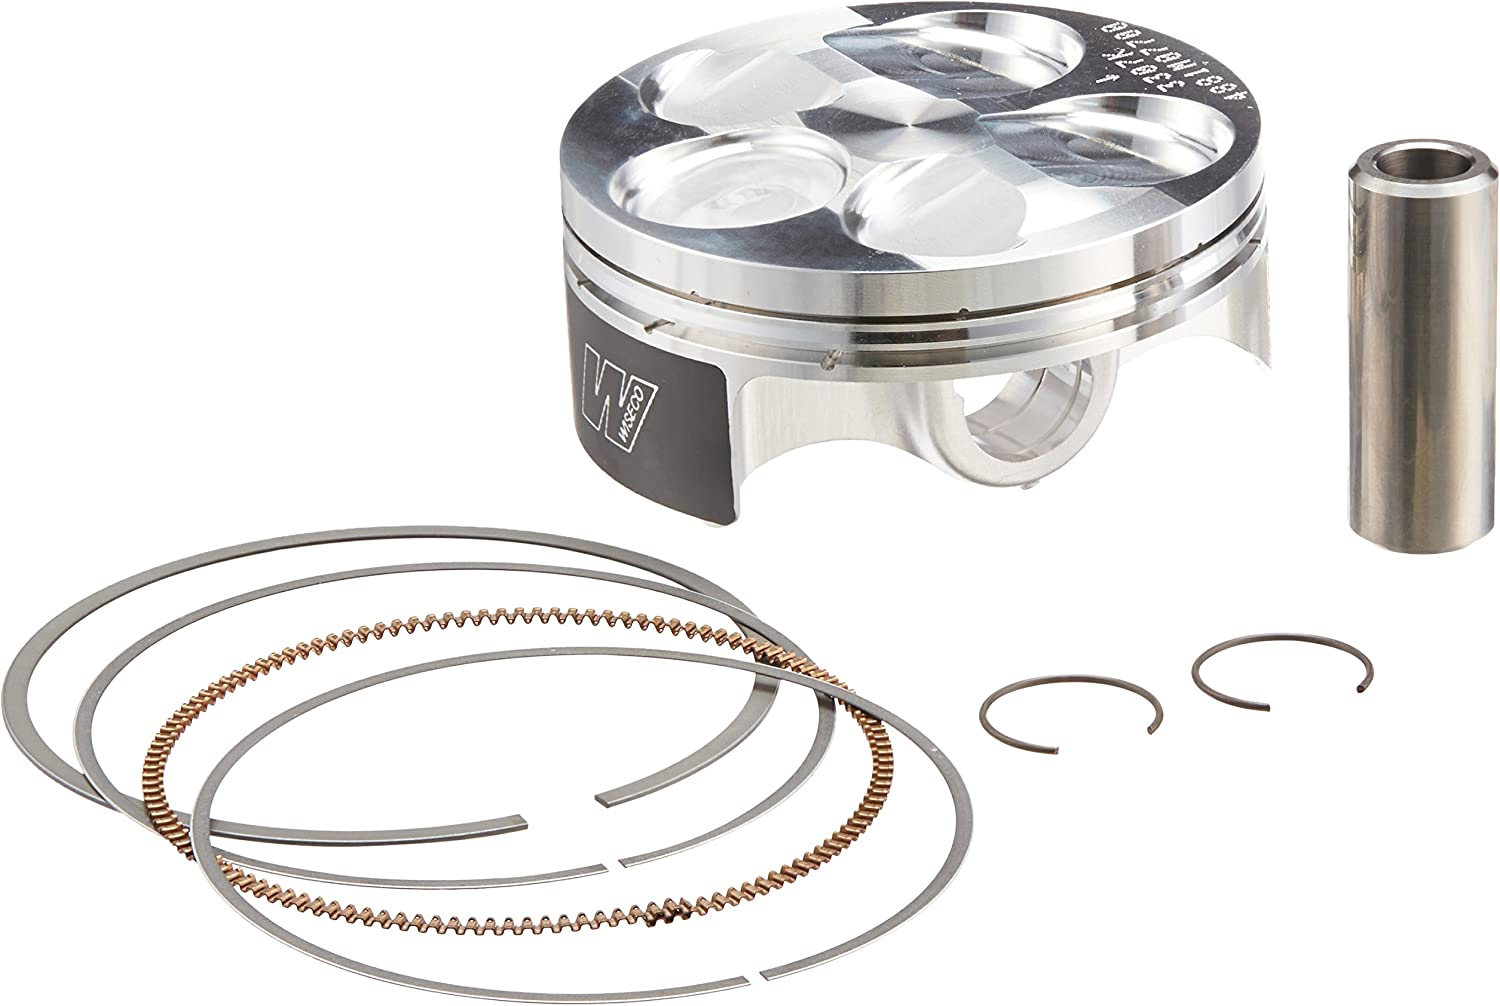 Wiseco 4881M07700 77.00mm 13.5:1 Compression 250cc Motorcycle Piston Kit